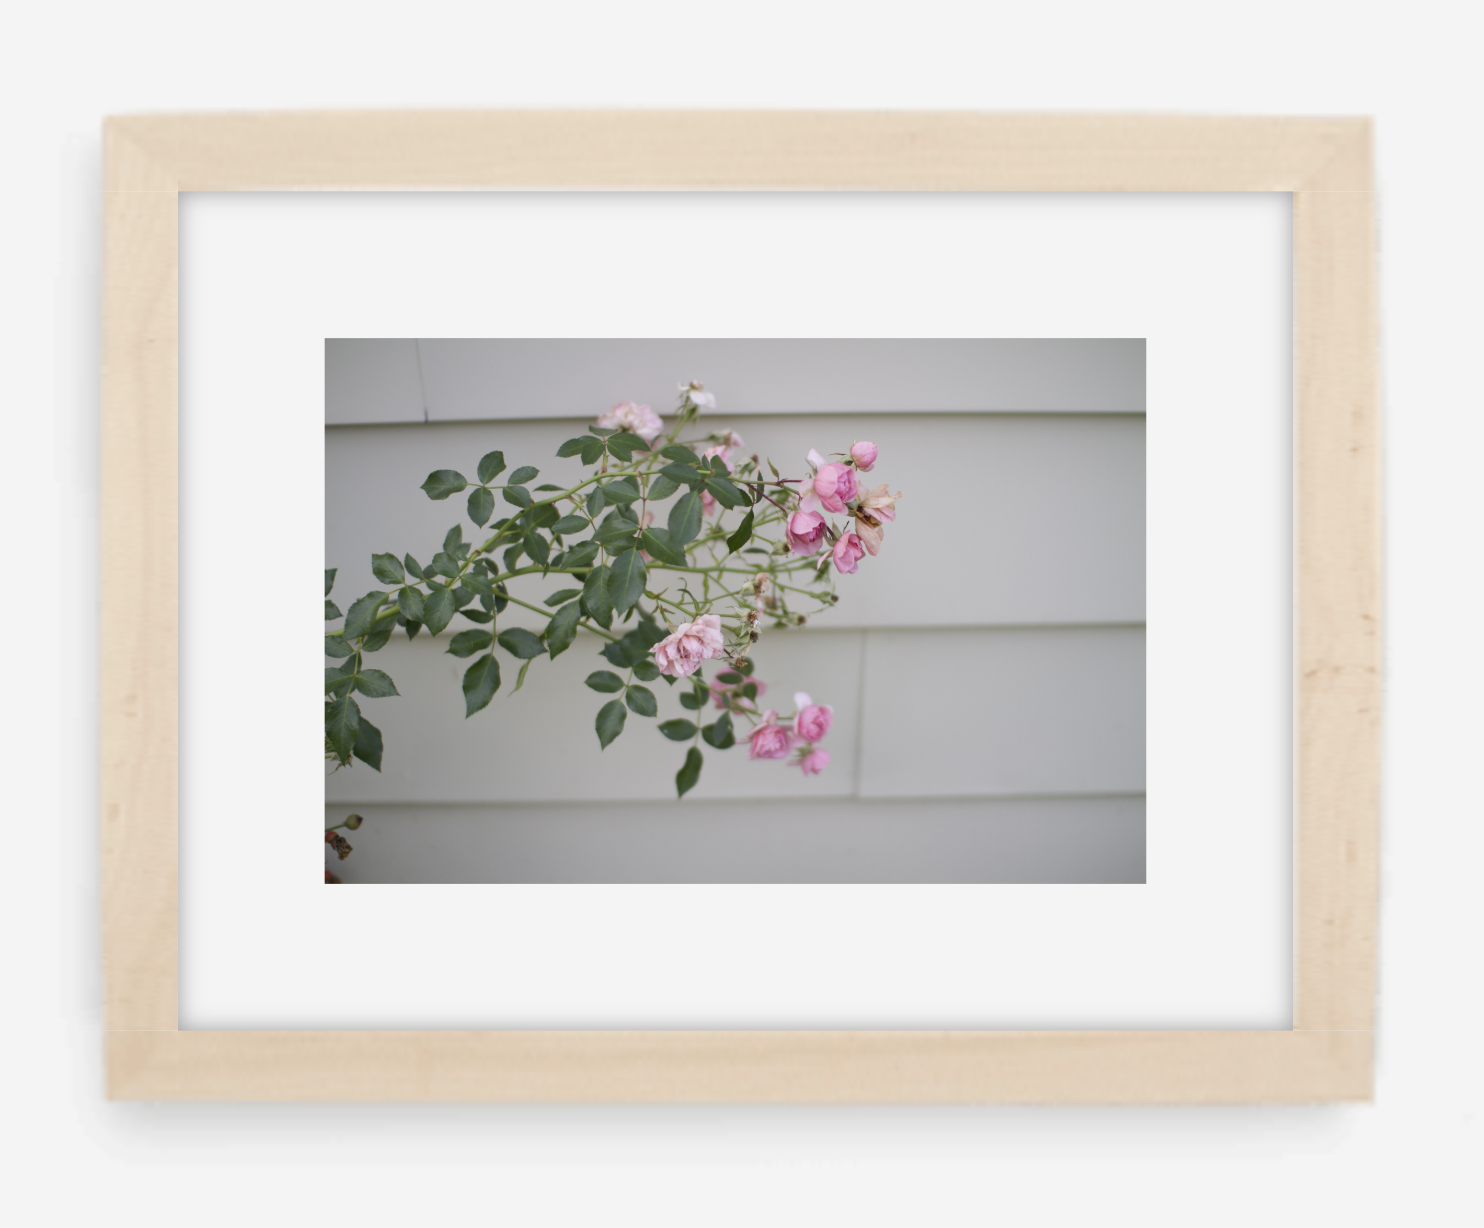 pink rose - 8x12 / gallery natural / with mat - 12x18 / gallery natural / with mat - 16x24 / gallery natural / with mat